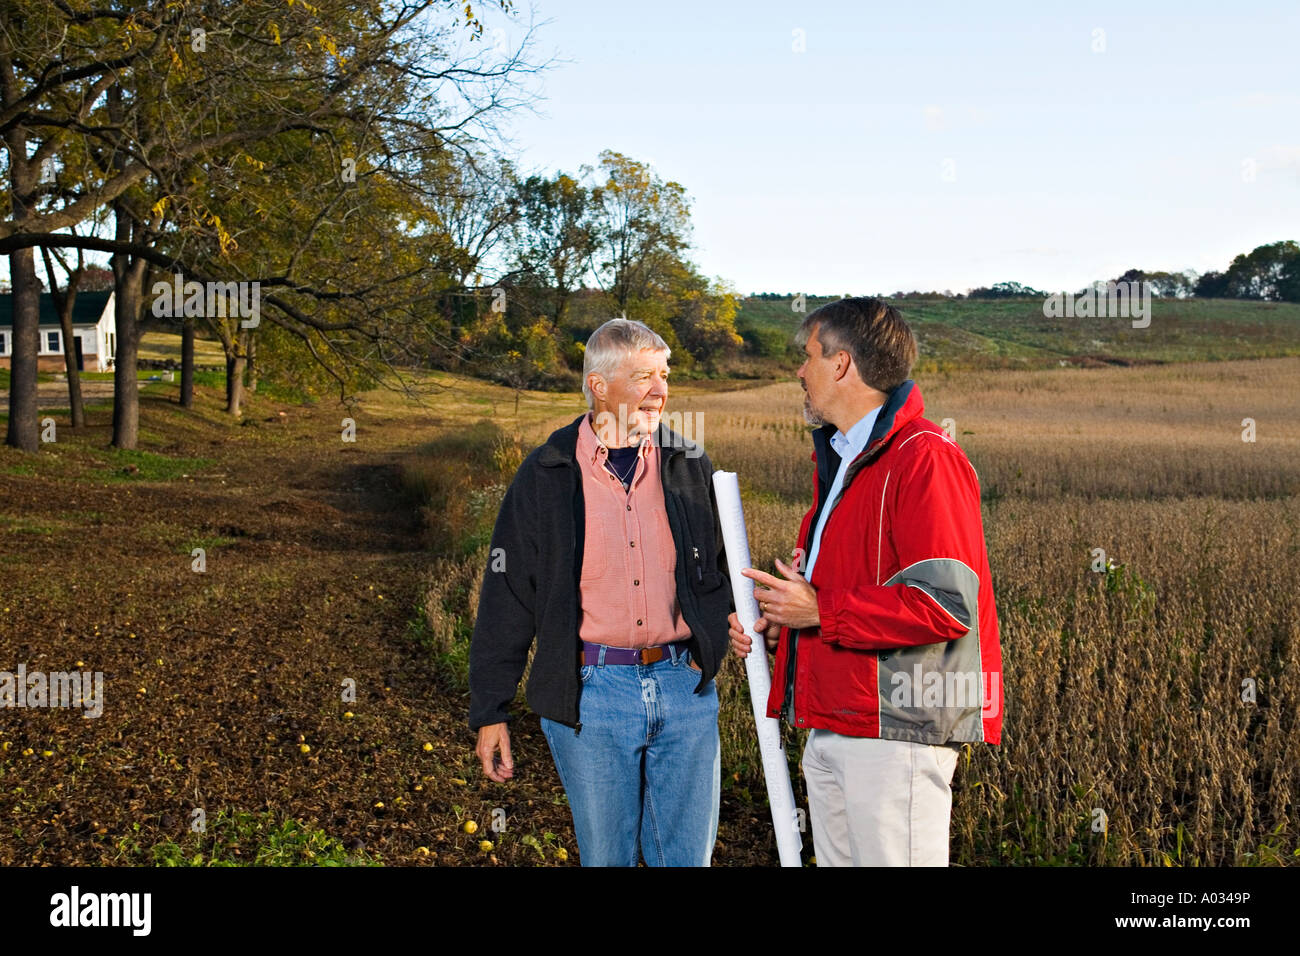 ILLINOIS Grayslake Two men discuss plans for site talk together about location usage man hold roll of blueprints - Stock Image